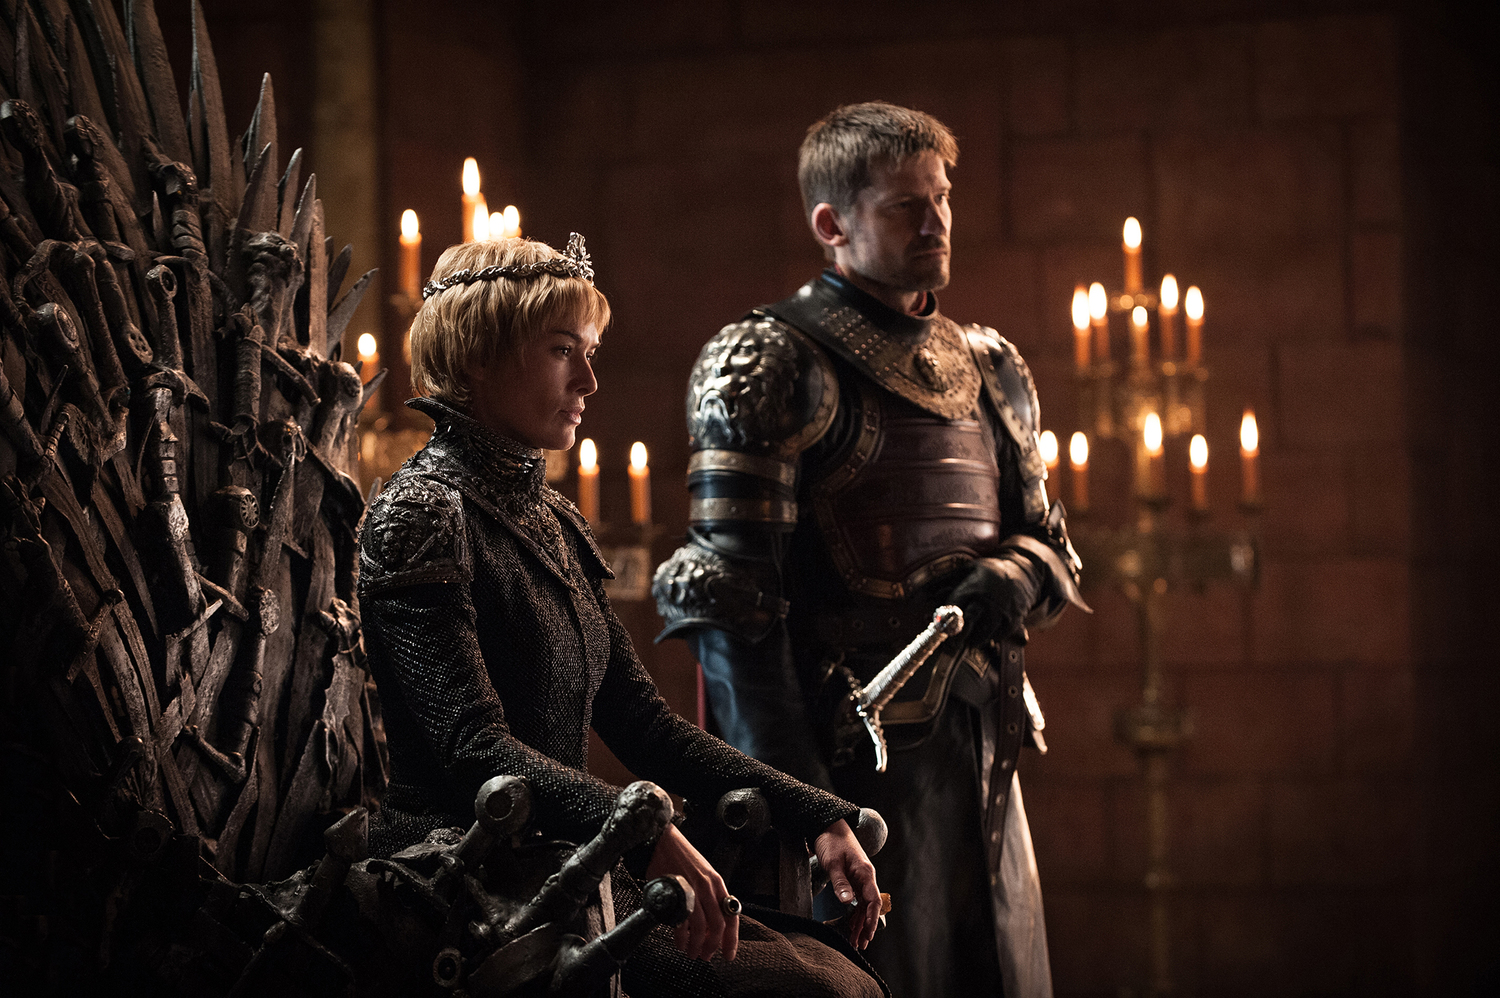 Cersei Lannister (Lena Headey) and Jaime Lannister (Nikolaj Coster-Waldau) in the Red Keep / Photo: Helen Sloan/HBO